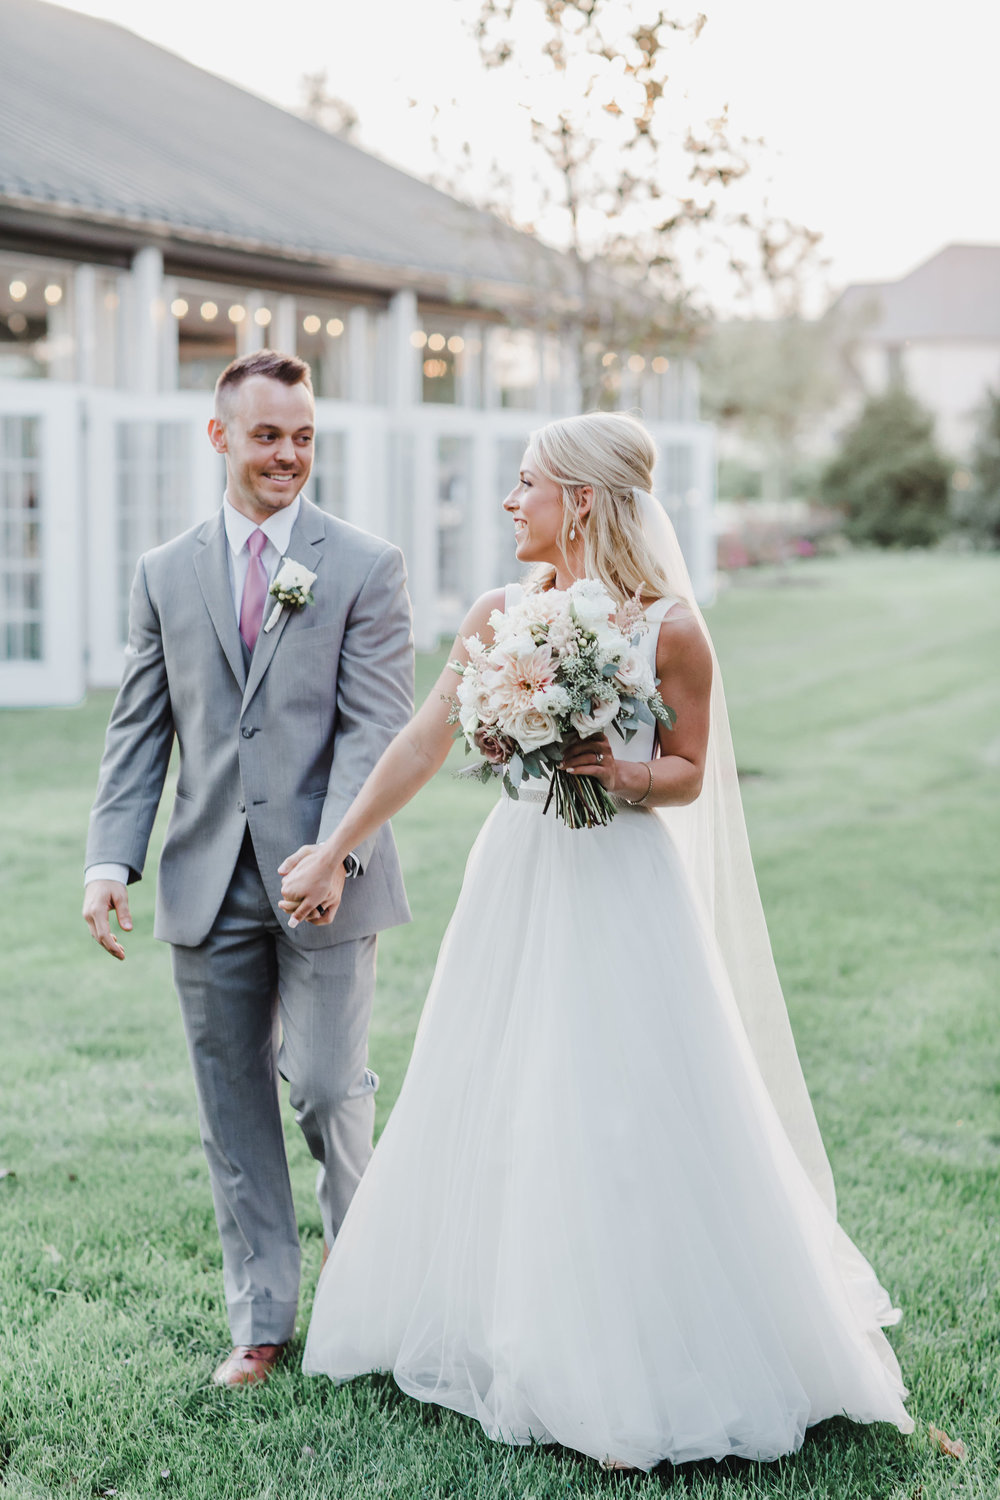 """Rachael captured our wedding day 10/5/18 and she did an AMAZING job! I really can't say enough good things about the entire process working with her. She was a complete joy to work with and made everyone feel so comfortable throughout the entire day of the wedding. Not only was she the best to work with, her work is amazing. I highly recommend having her for your big day, you will not be disappointed!"" - - Tara and Taylor"